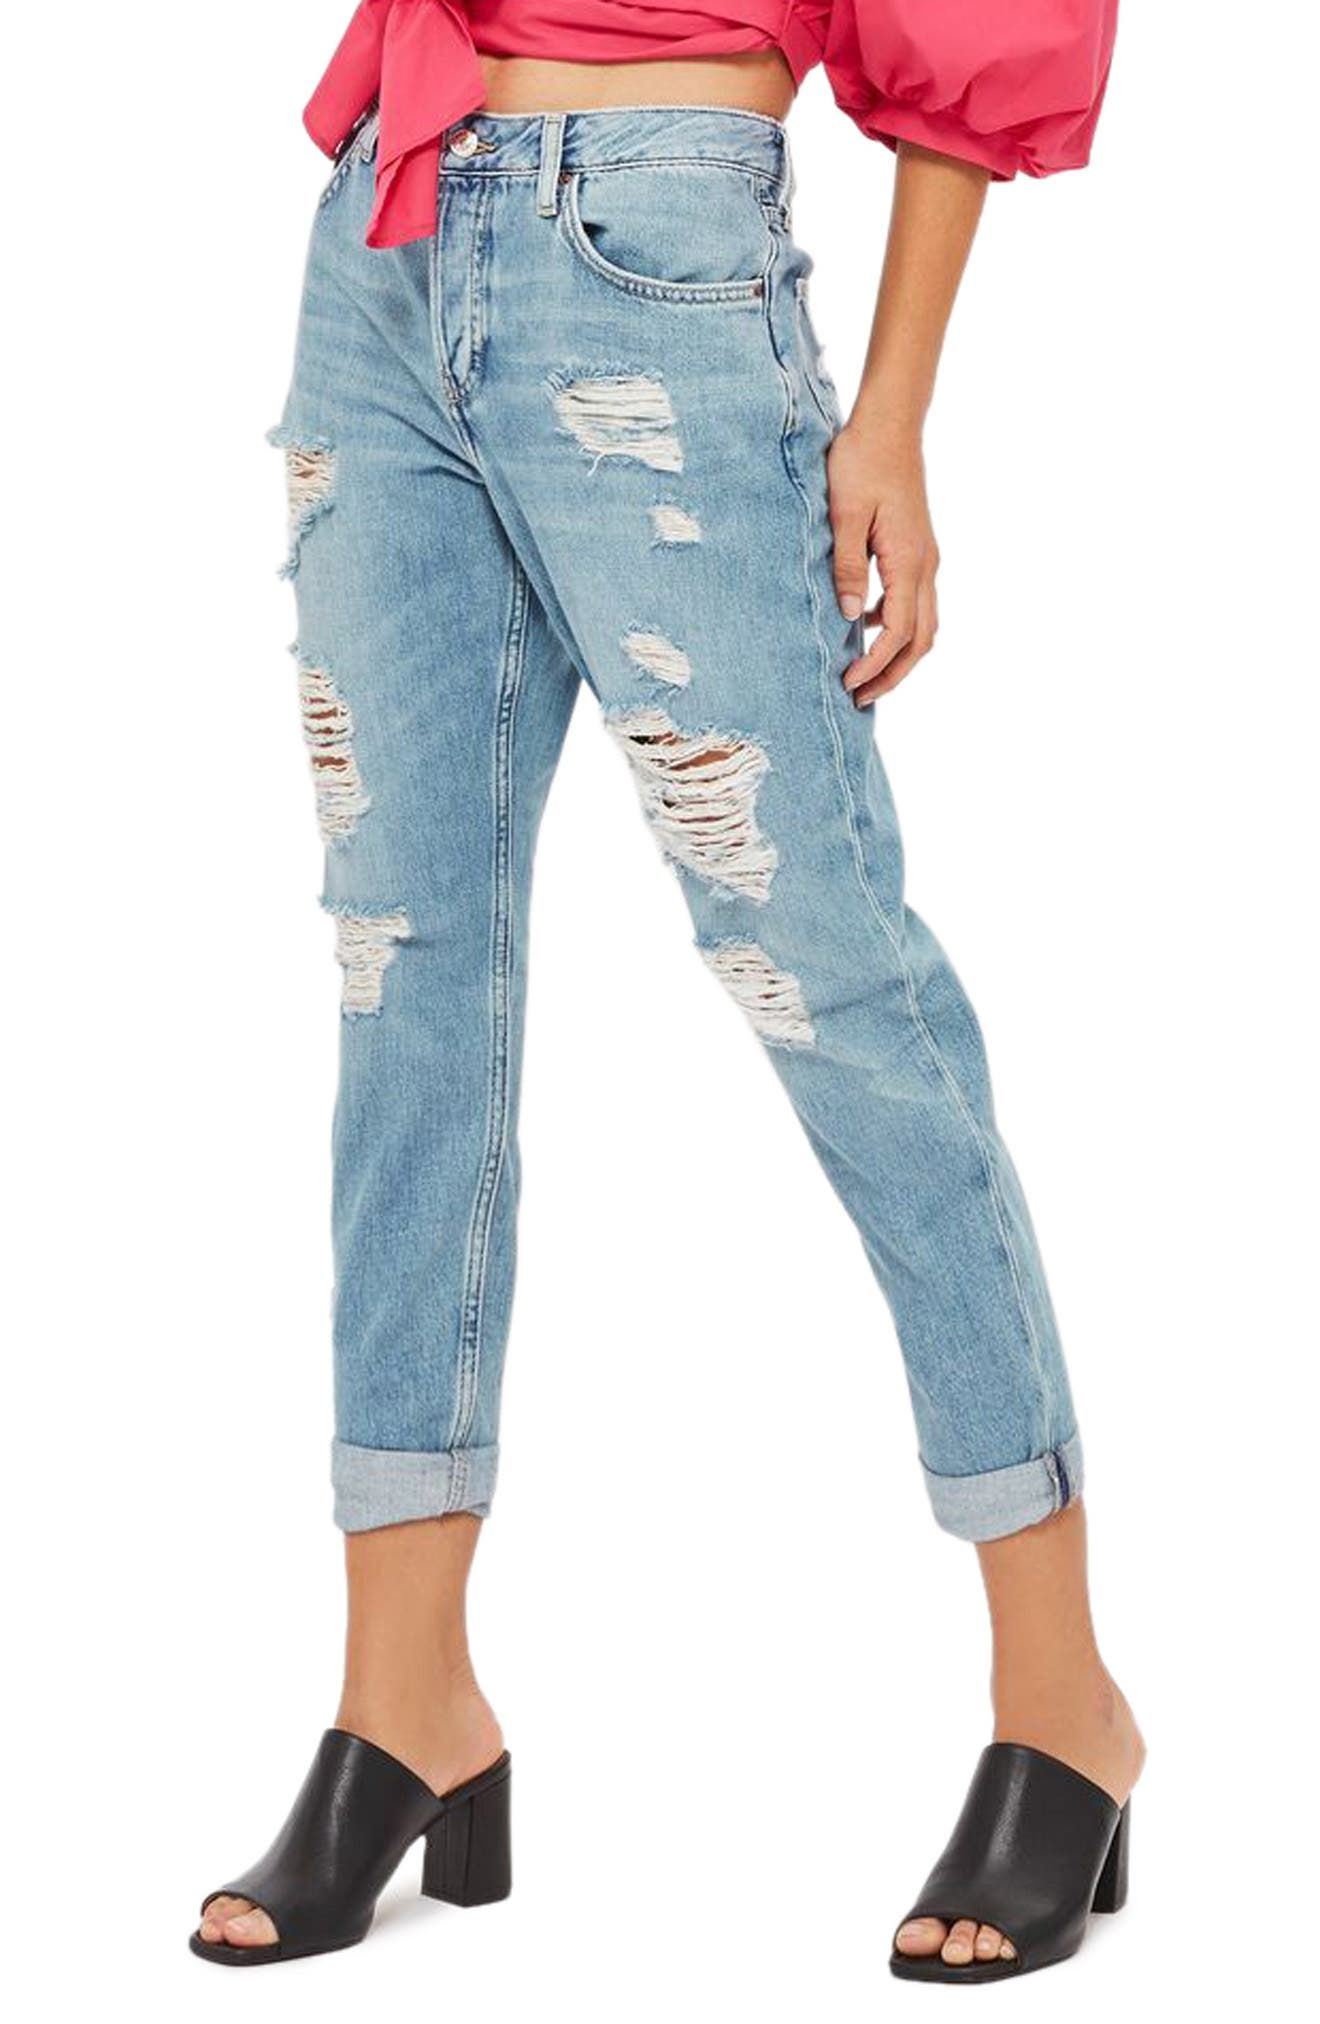 Moto Hayden Super Ripped Boyfriend Jeans,                             Main thumbnail 1, color,                             Light Denim